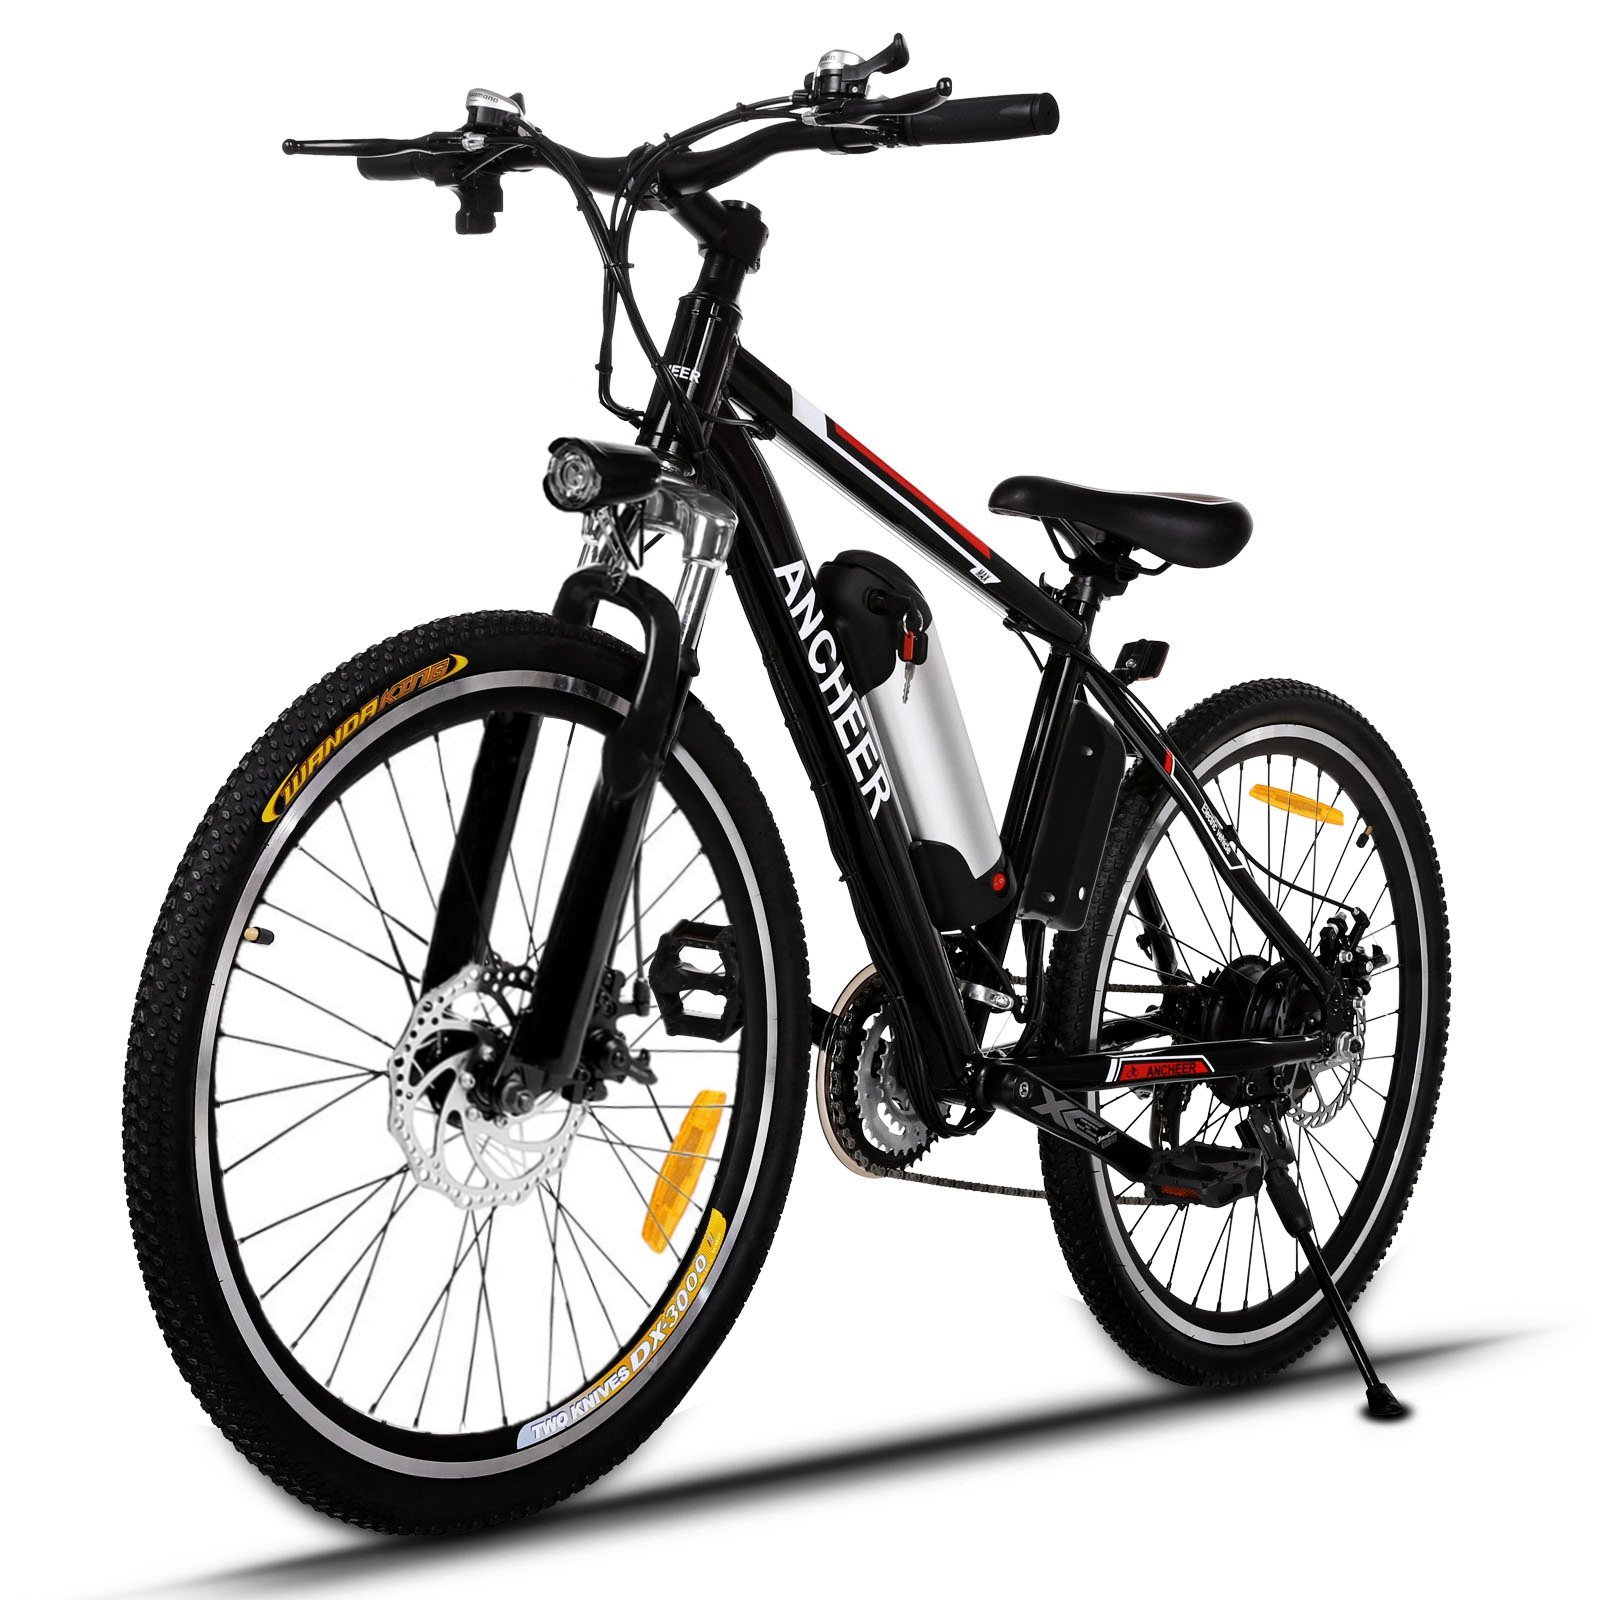 ANCHEER Power Plus Electric Mountain Bike, 26'' Electric Bike with 36V 8Ah Lithium-Ion Battery, Shimano 21 Speed Shifter (Black-Add Free Assembly)